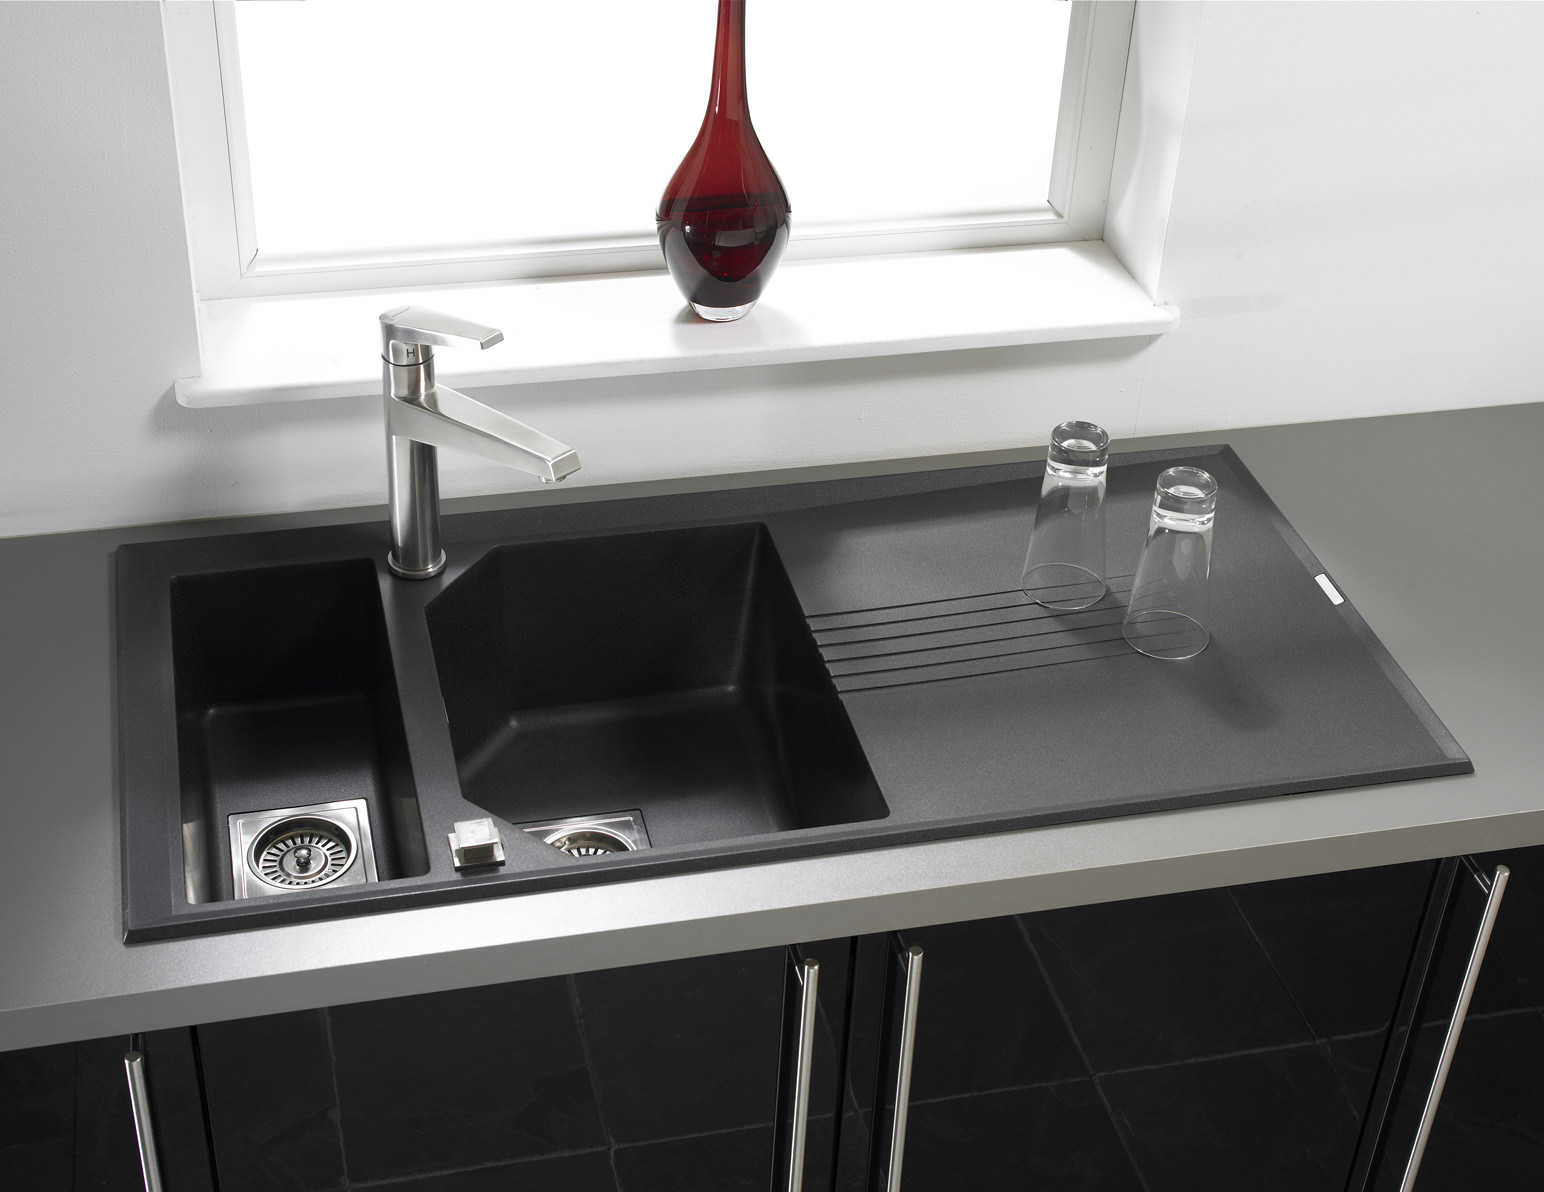 Astracast Helix 1 5 Bowl Composite Rok Metallic Inset Sink